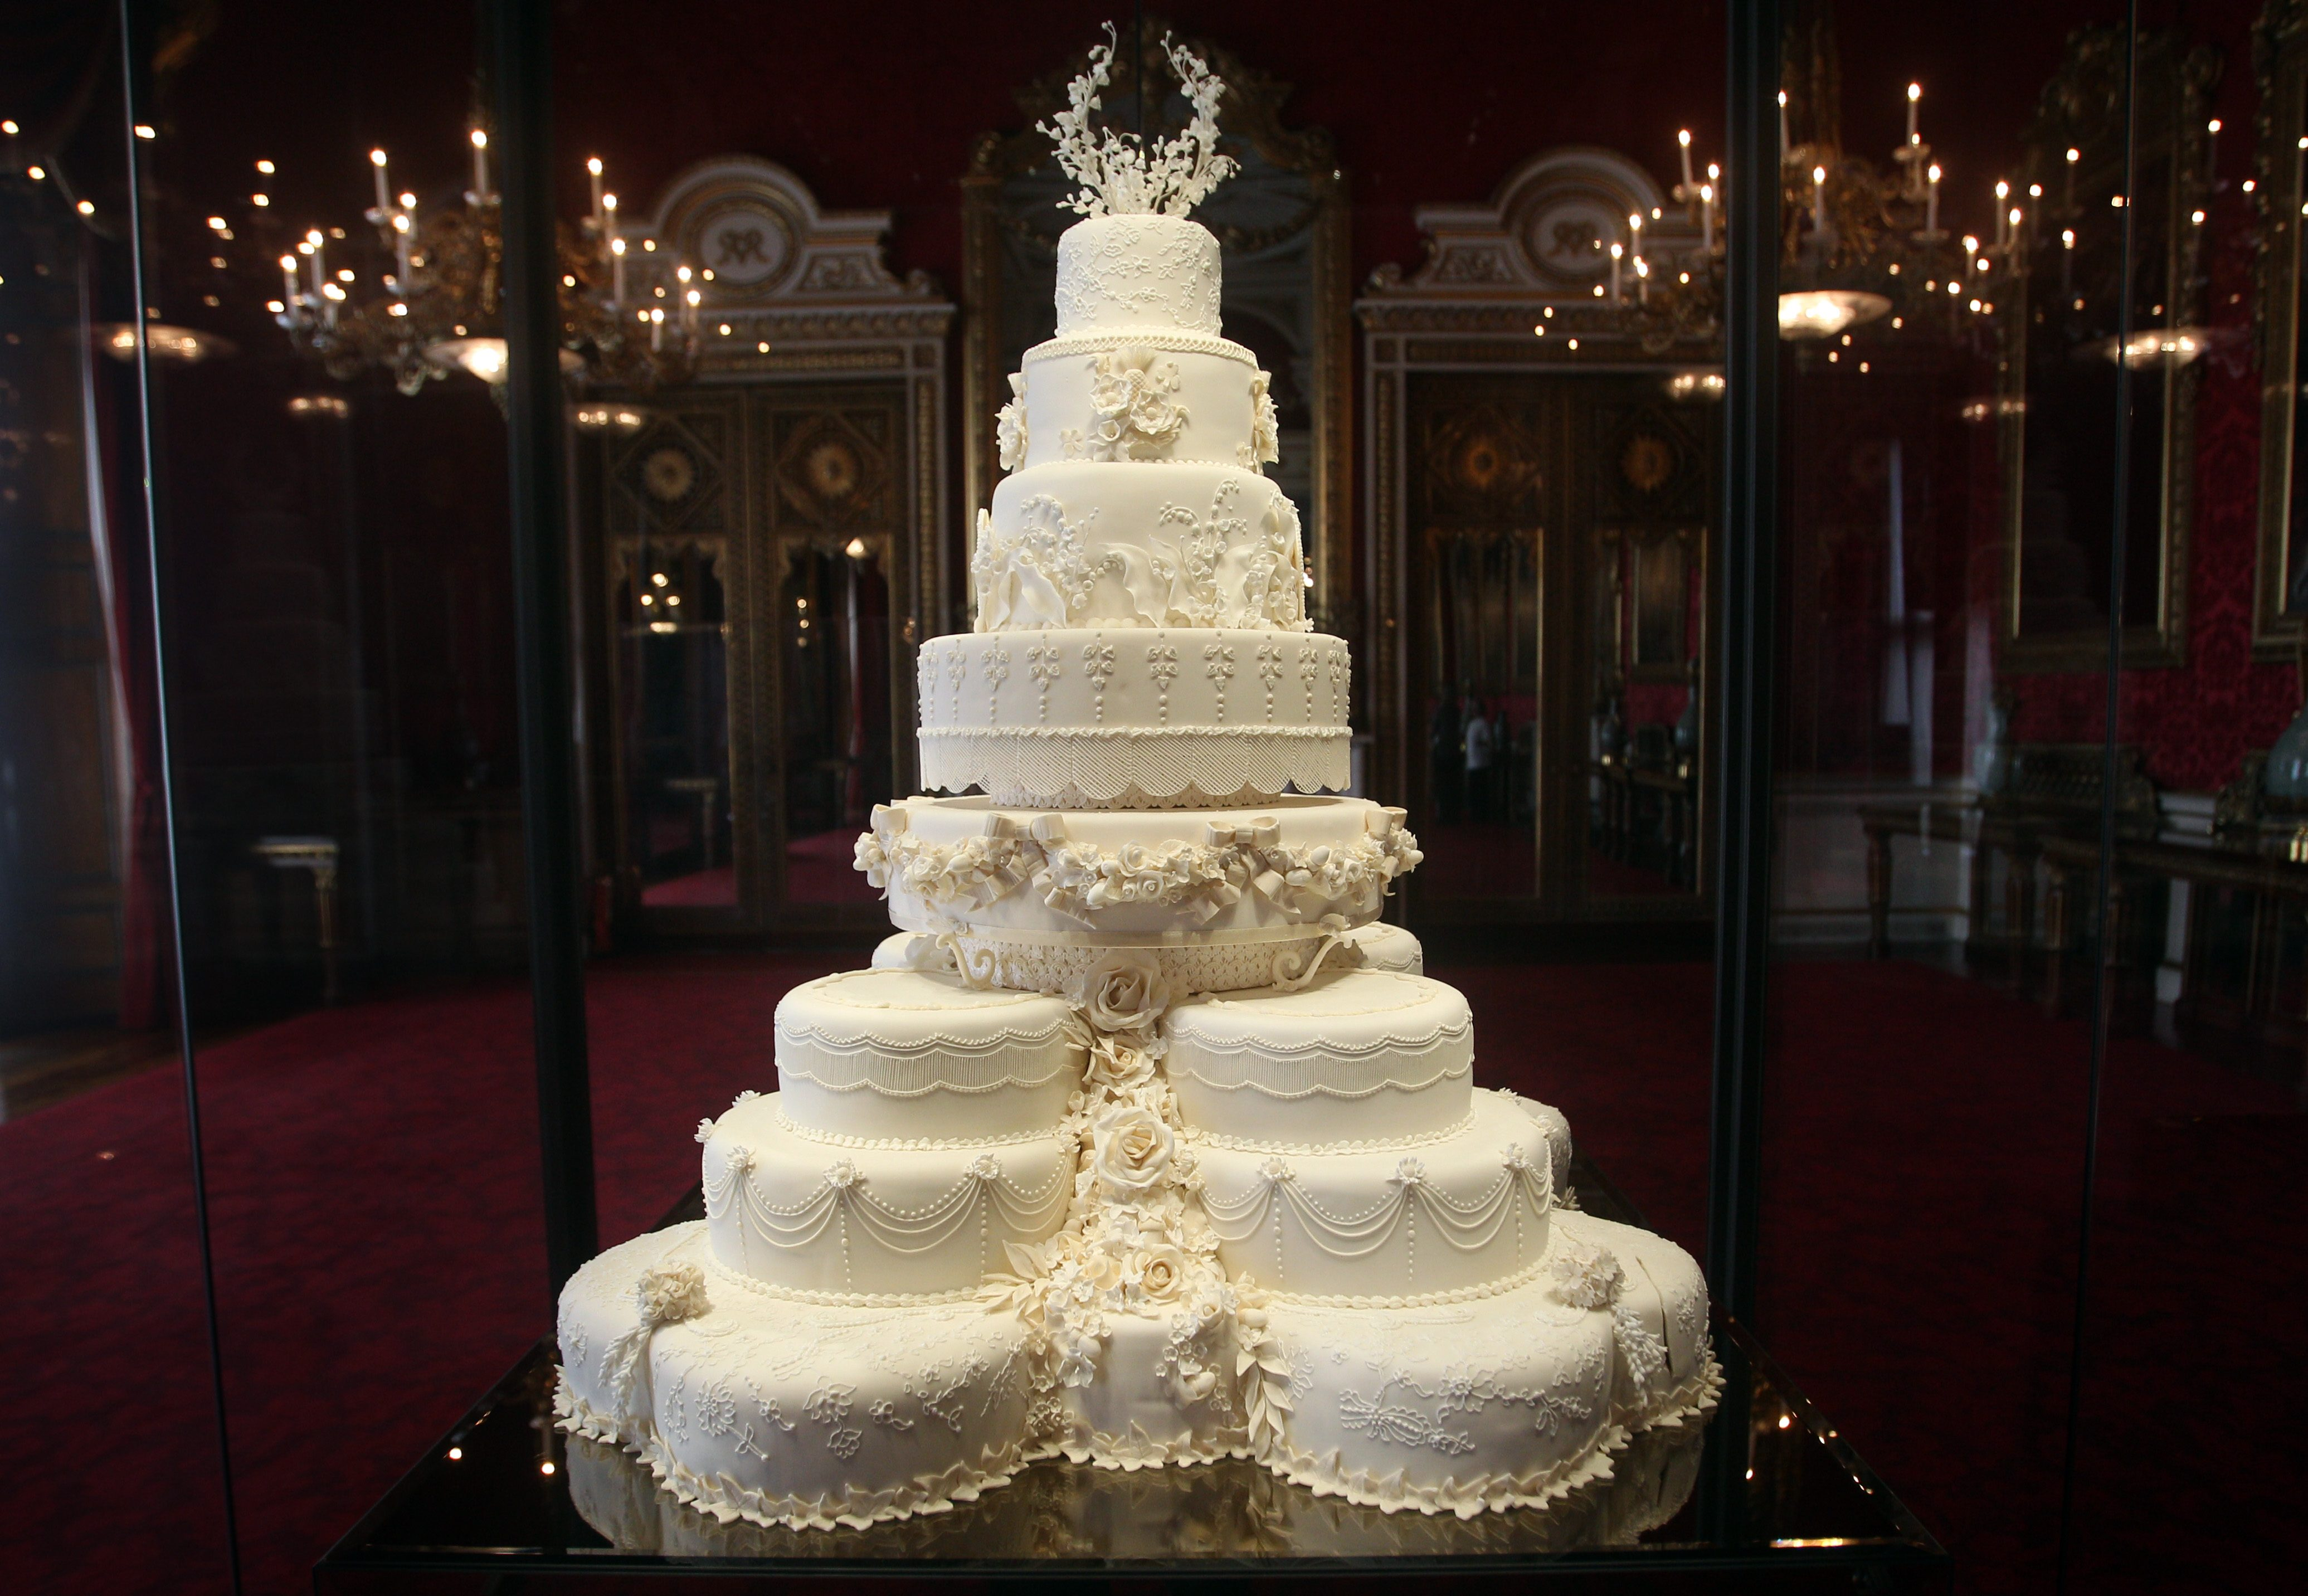 Why The Top Tiers Of Royal Cakes Are Saved Taste Of Home